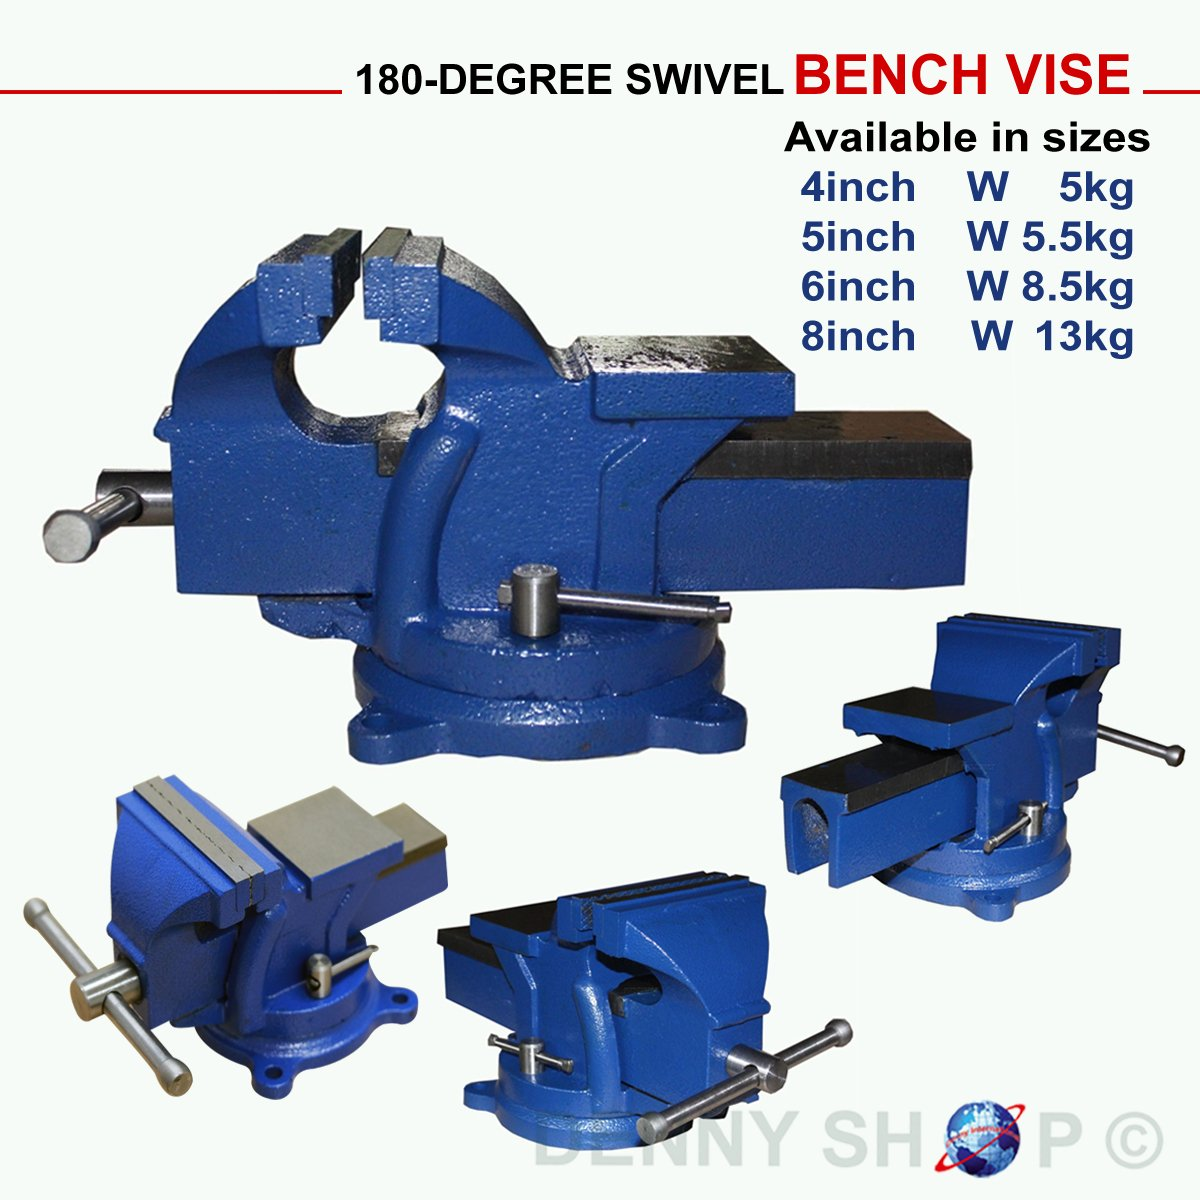 New 4, 5, 6 & 8 inch Jaw Bench Vise Engineer Workshop clamp Swivel ...